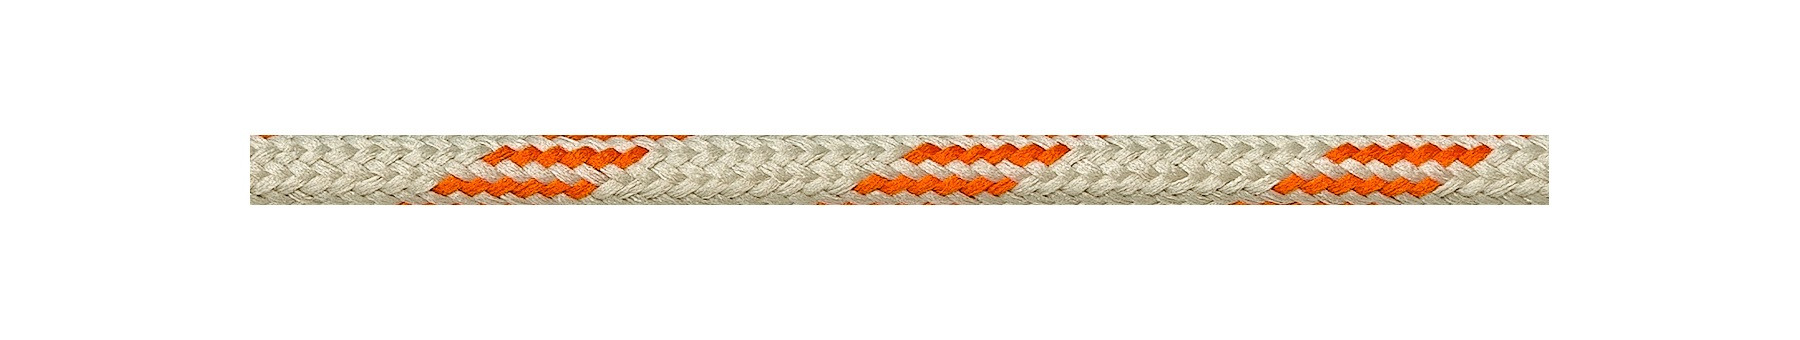 Textilkabel Orange-Beige